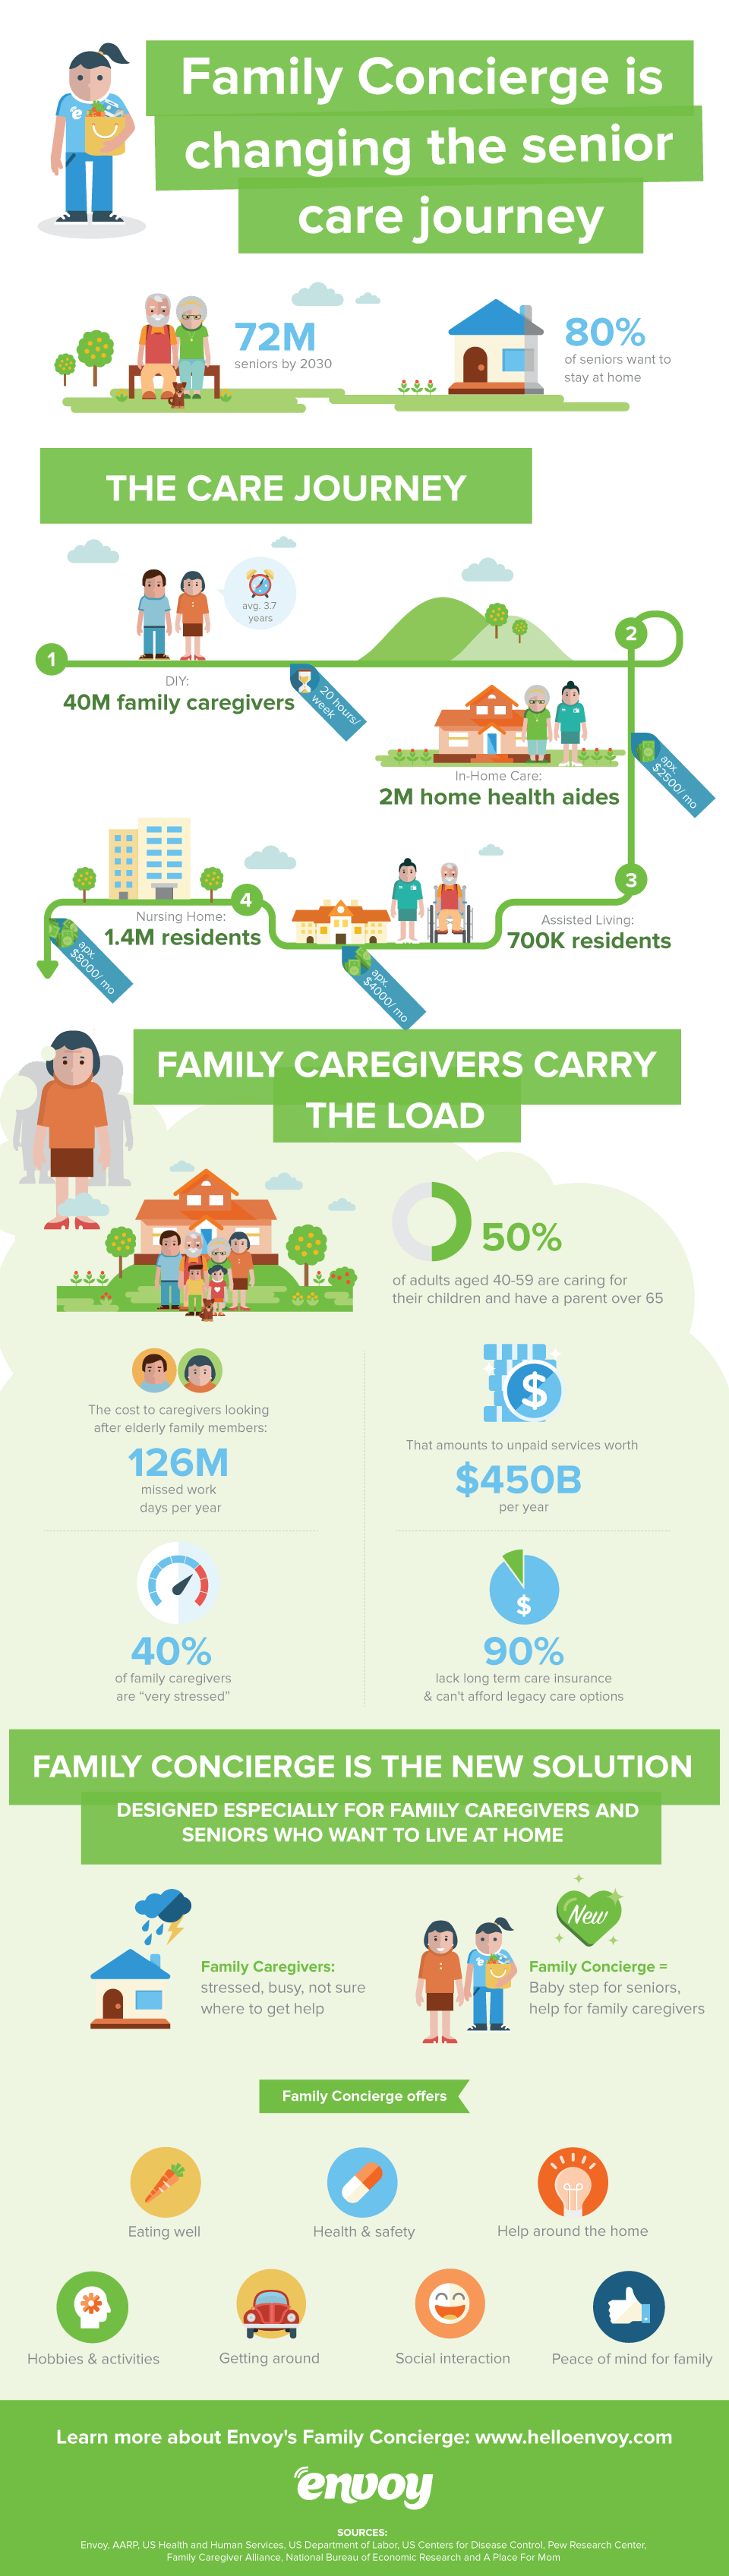 Infographic: Family Concierge is Changing the Senior Care Journey